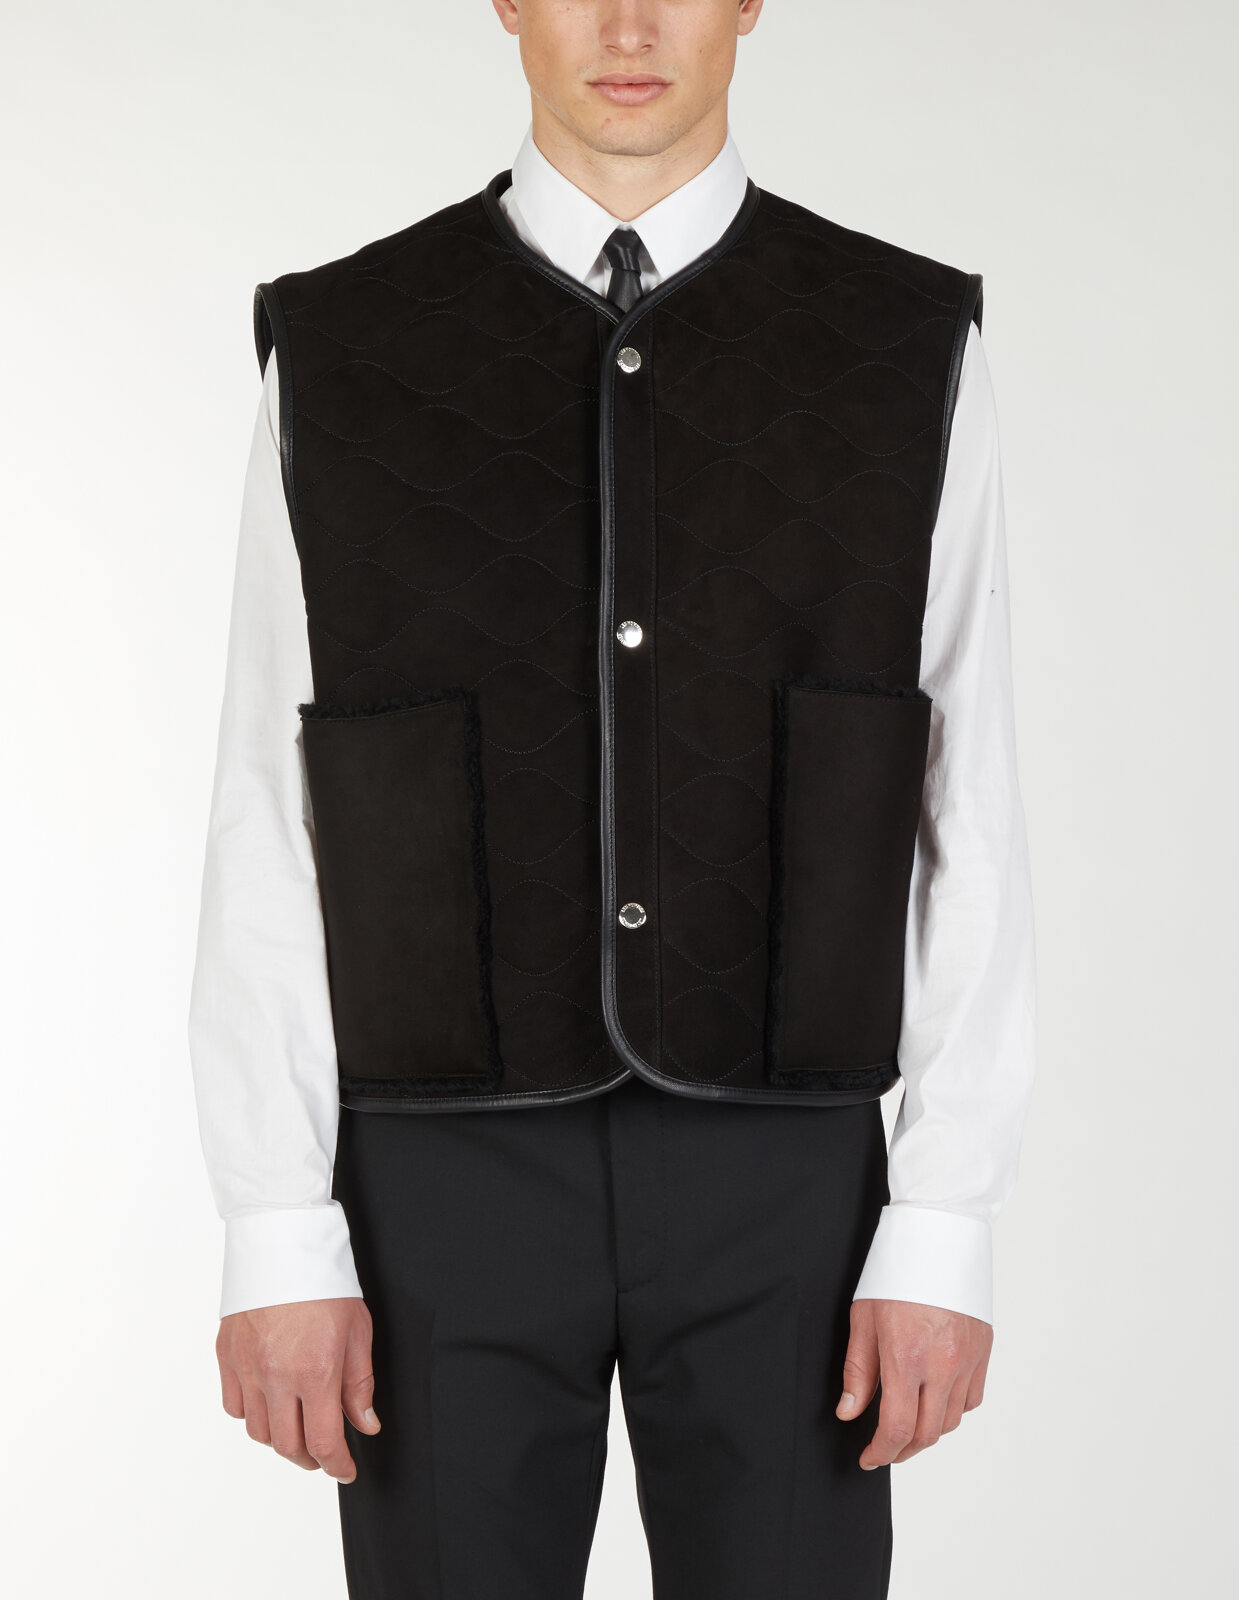 Gilet Con Tasche In Shearling - Les Hommes